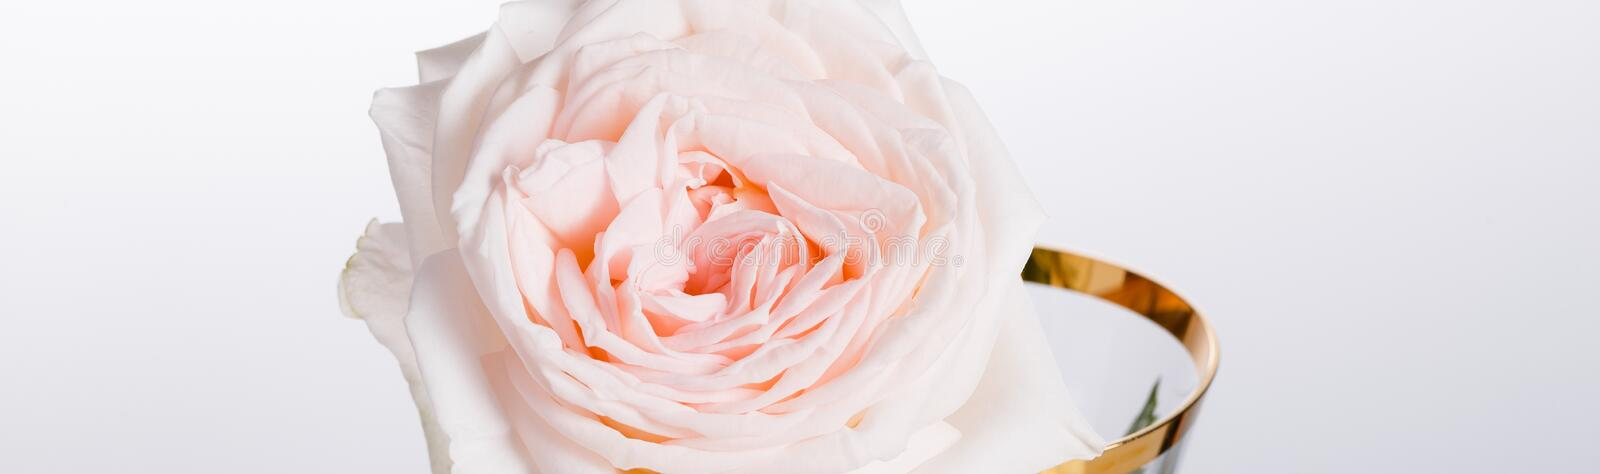 Romantic banner, delicate white peonies flowers close-up. Fragrant pink petals stock images